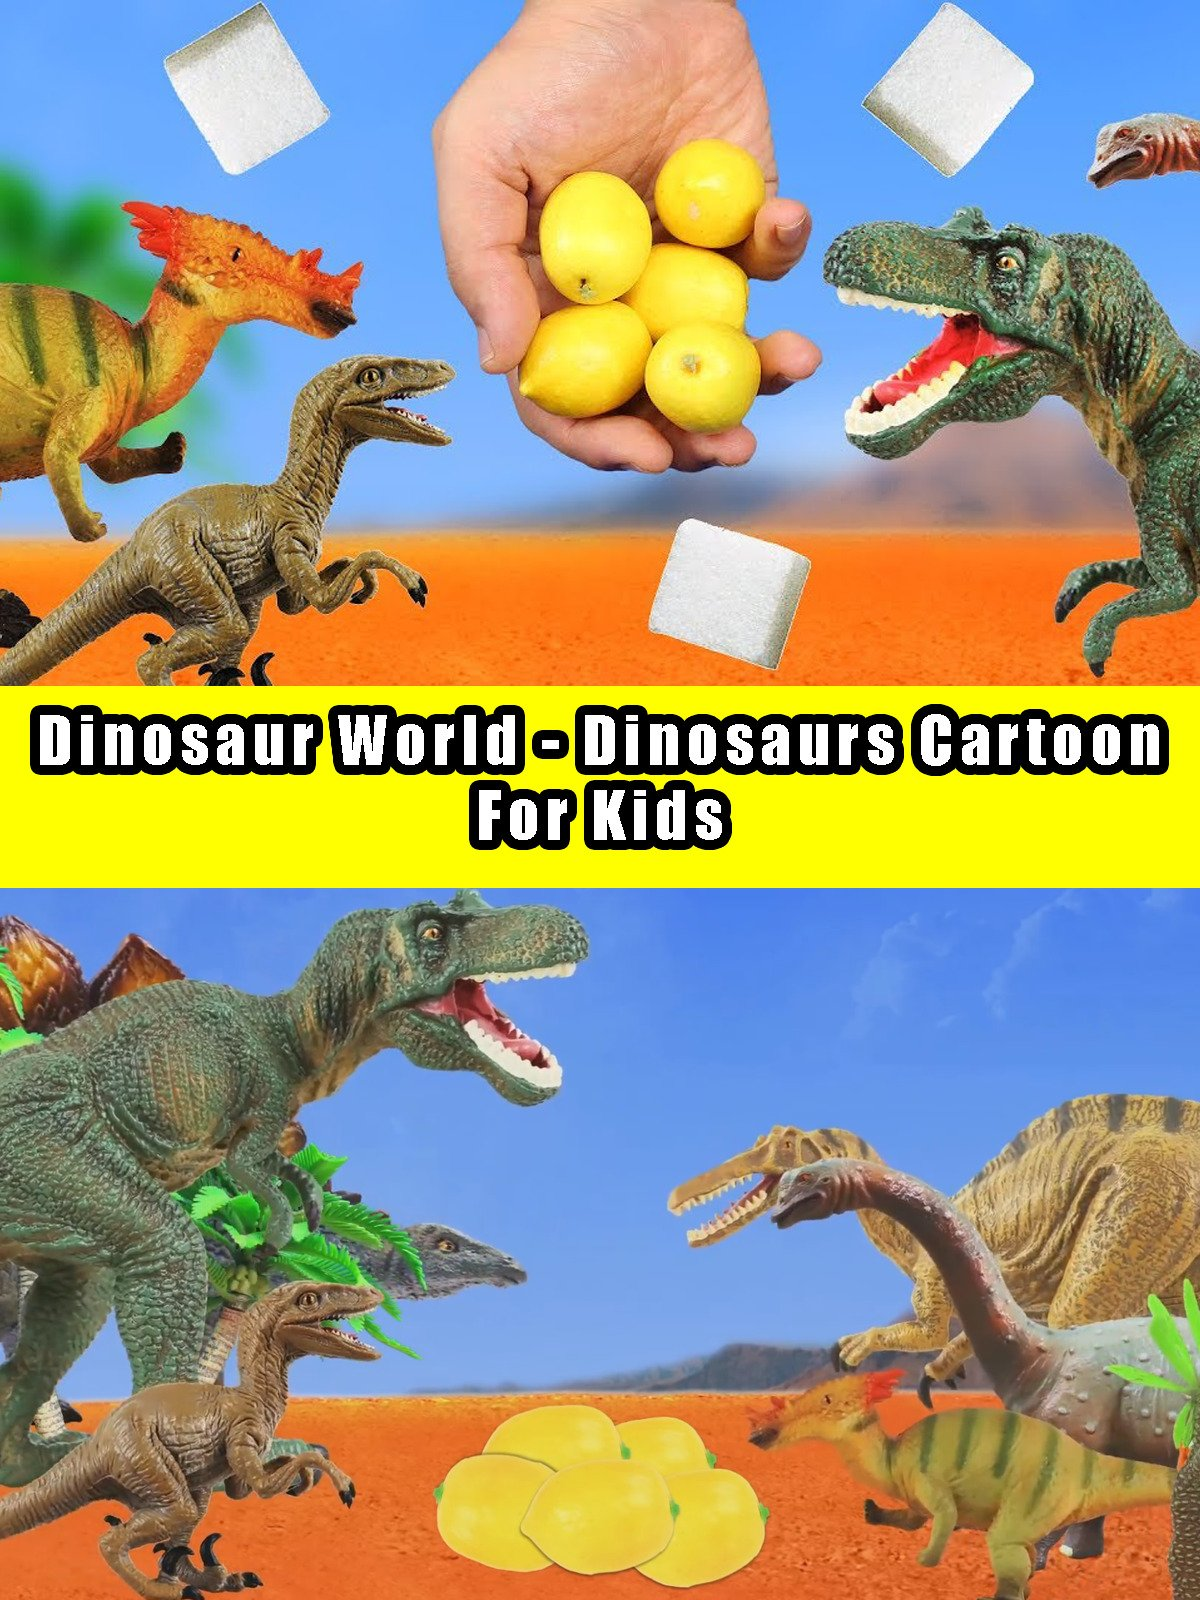 Dinosaur World - Dinosaurs Cartoon For Kids on Amazon Prime Instant Video UK